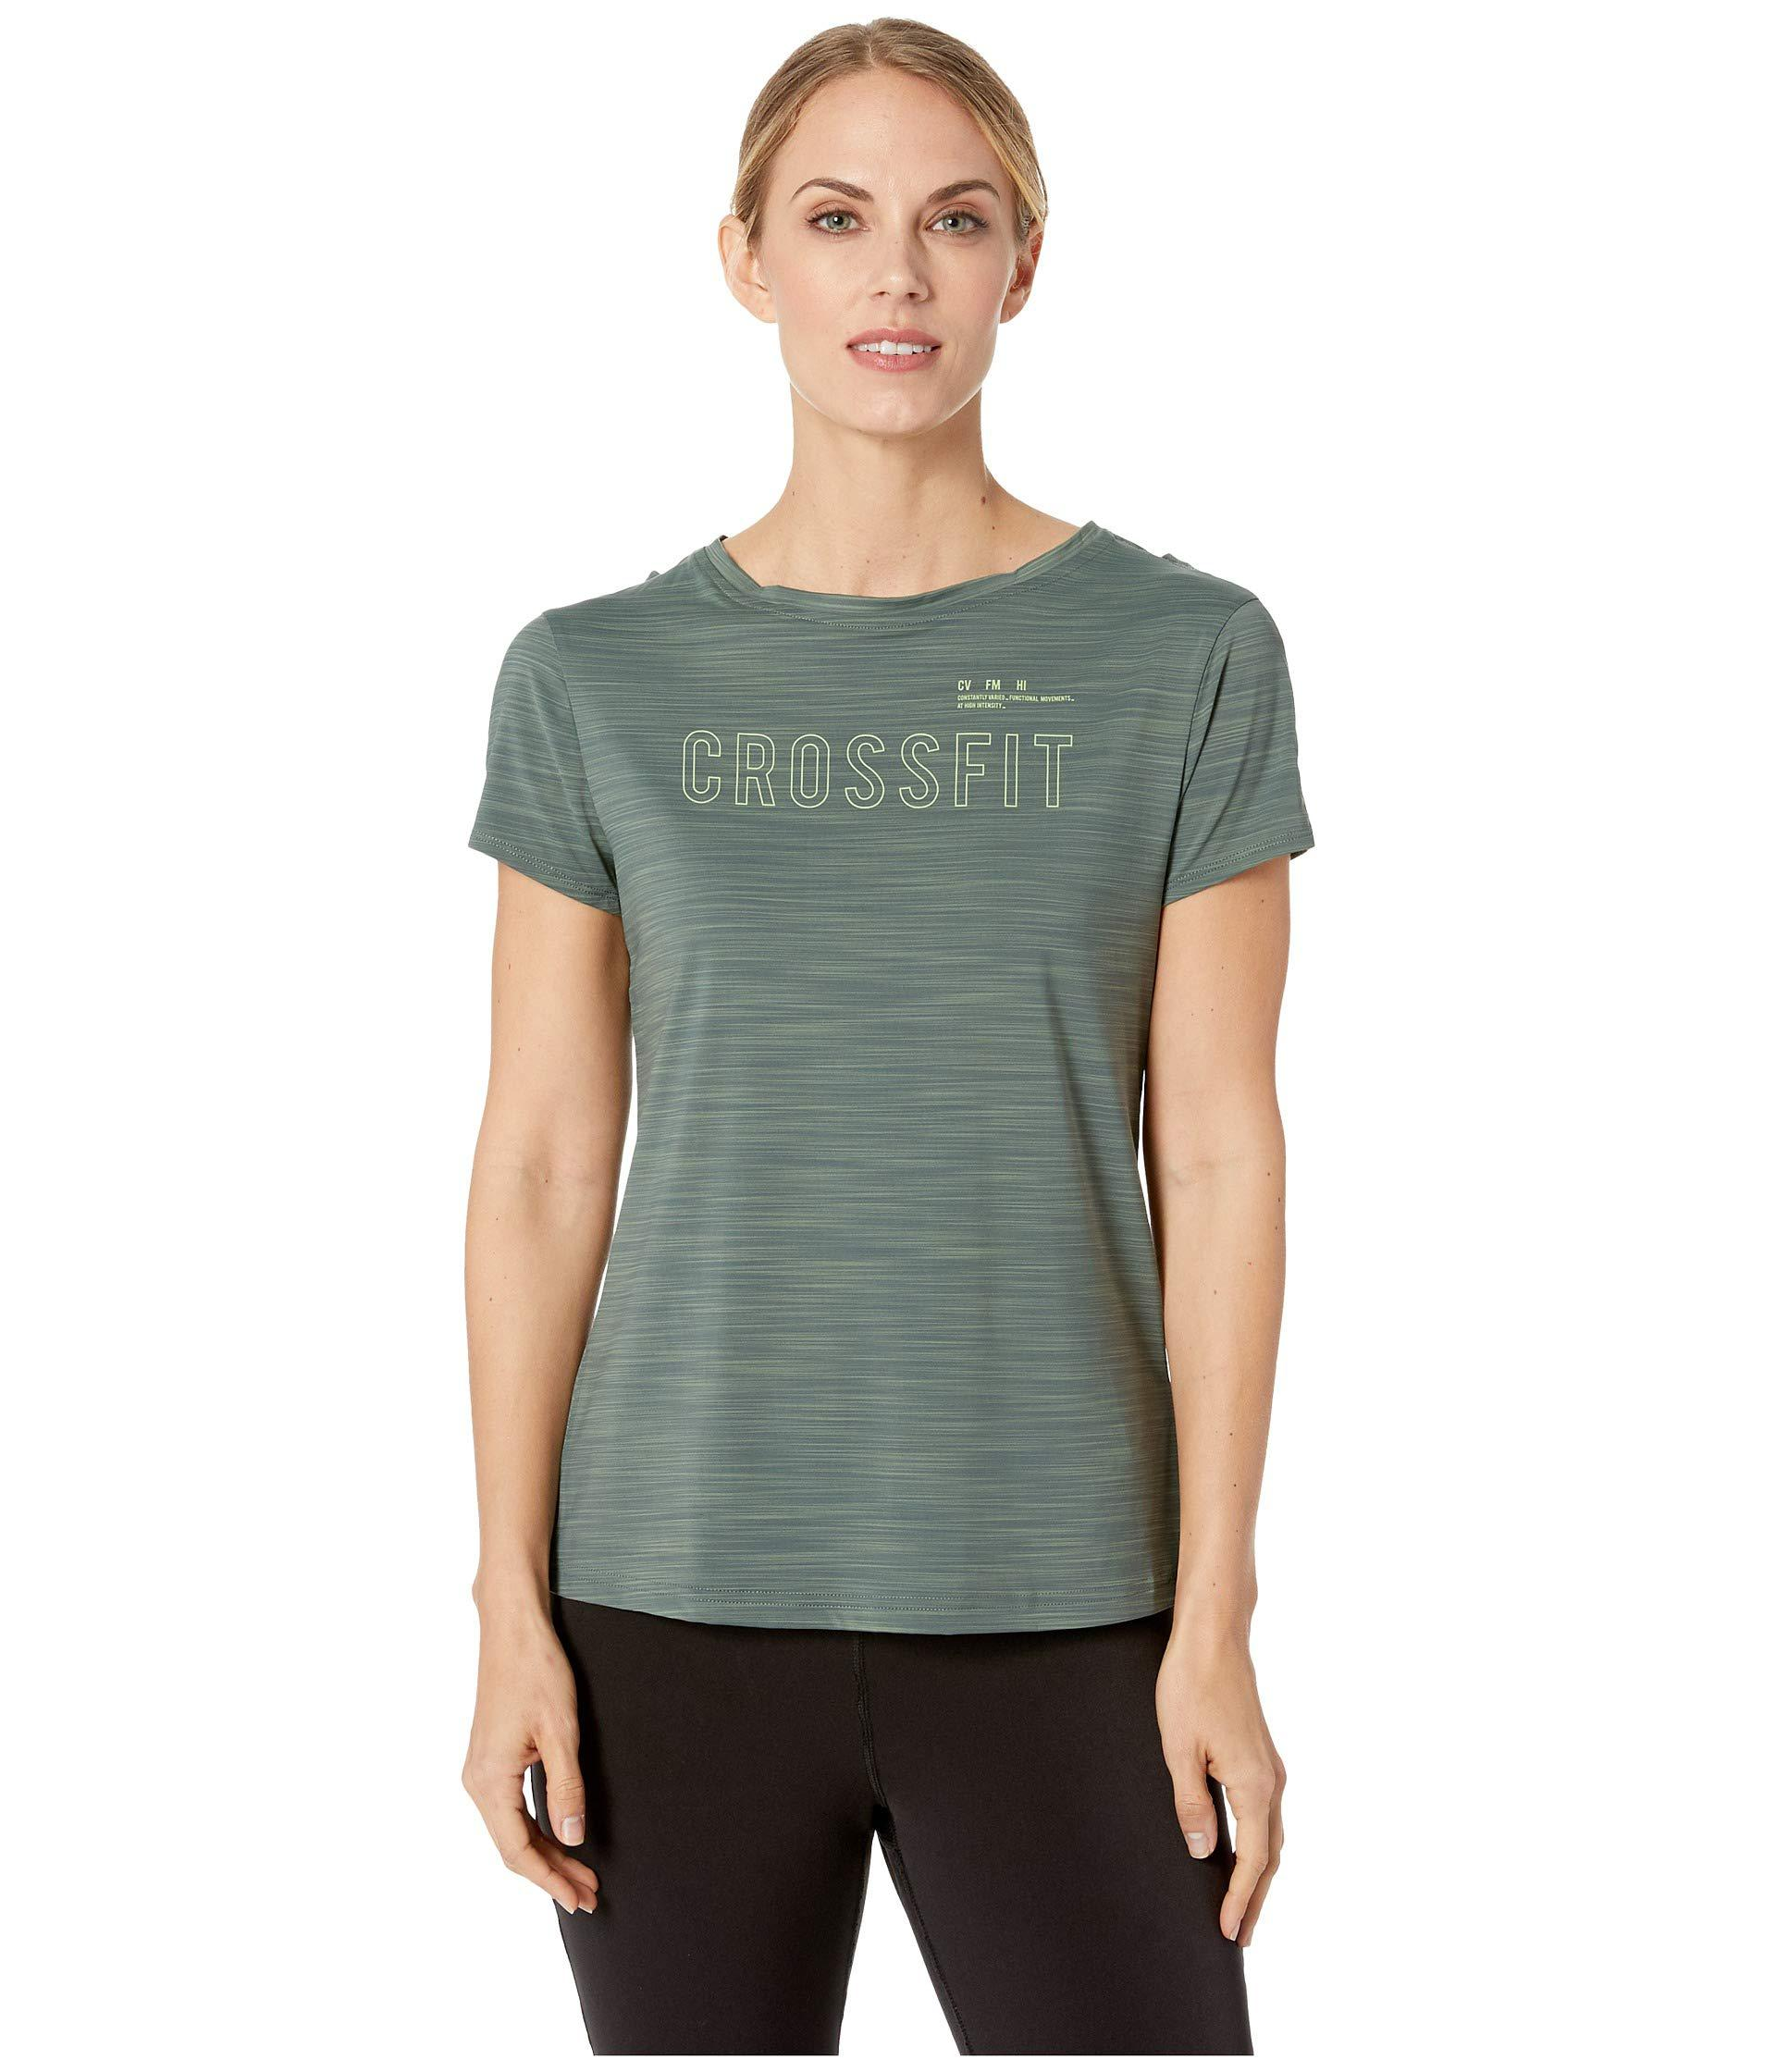 2b05a5bbd032 Lyst - Reebok Crossfit Activchill Tee in Green - Save 15%